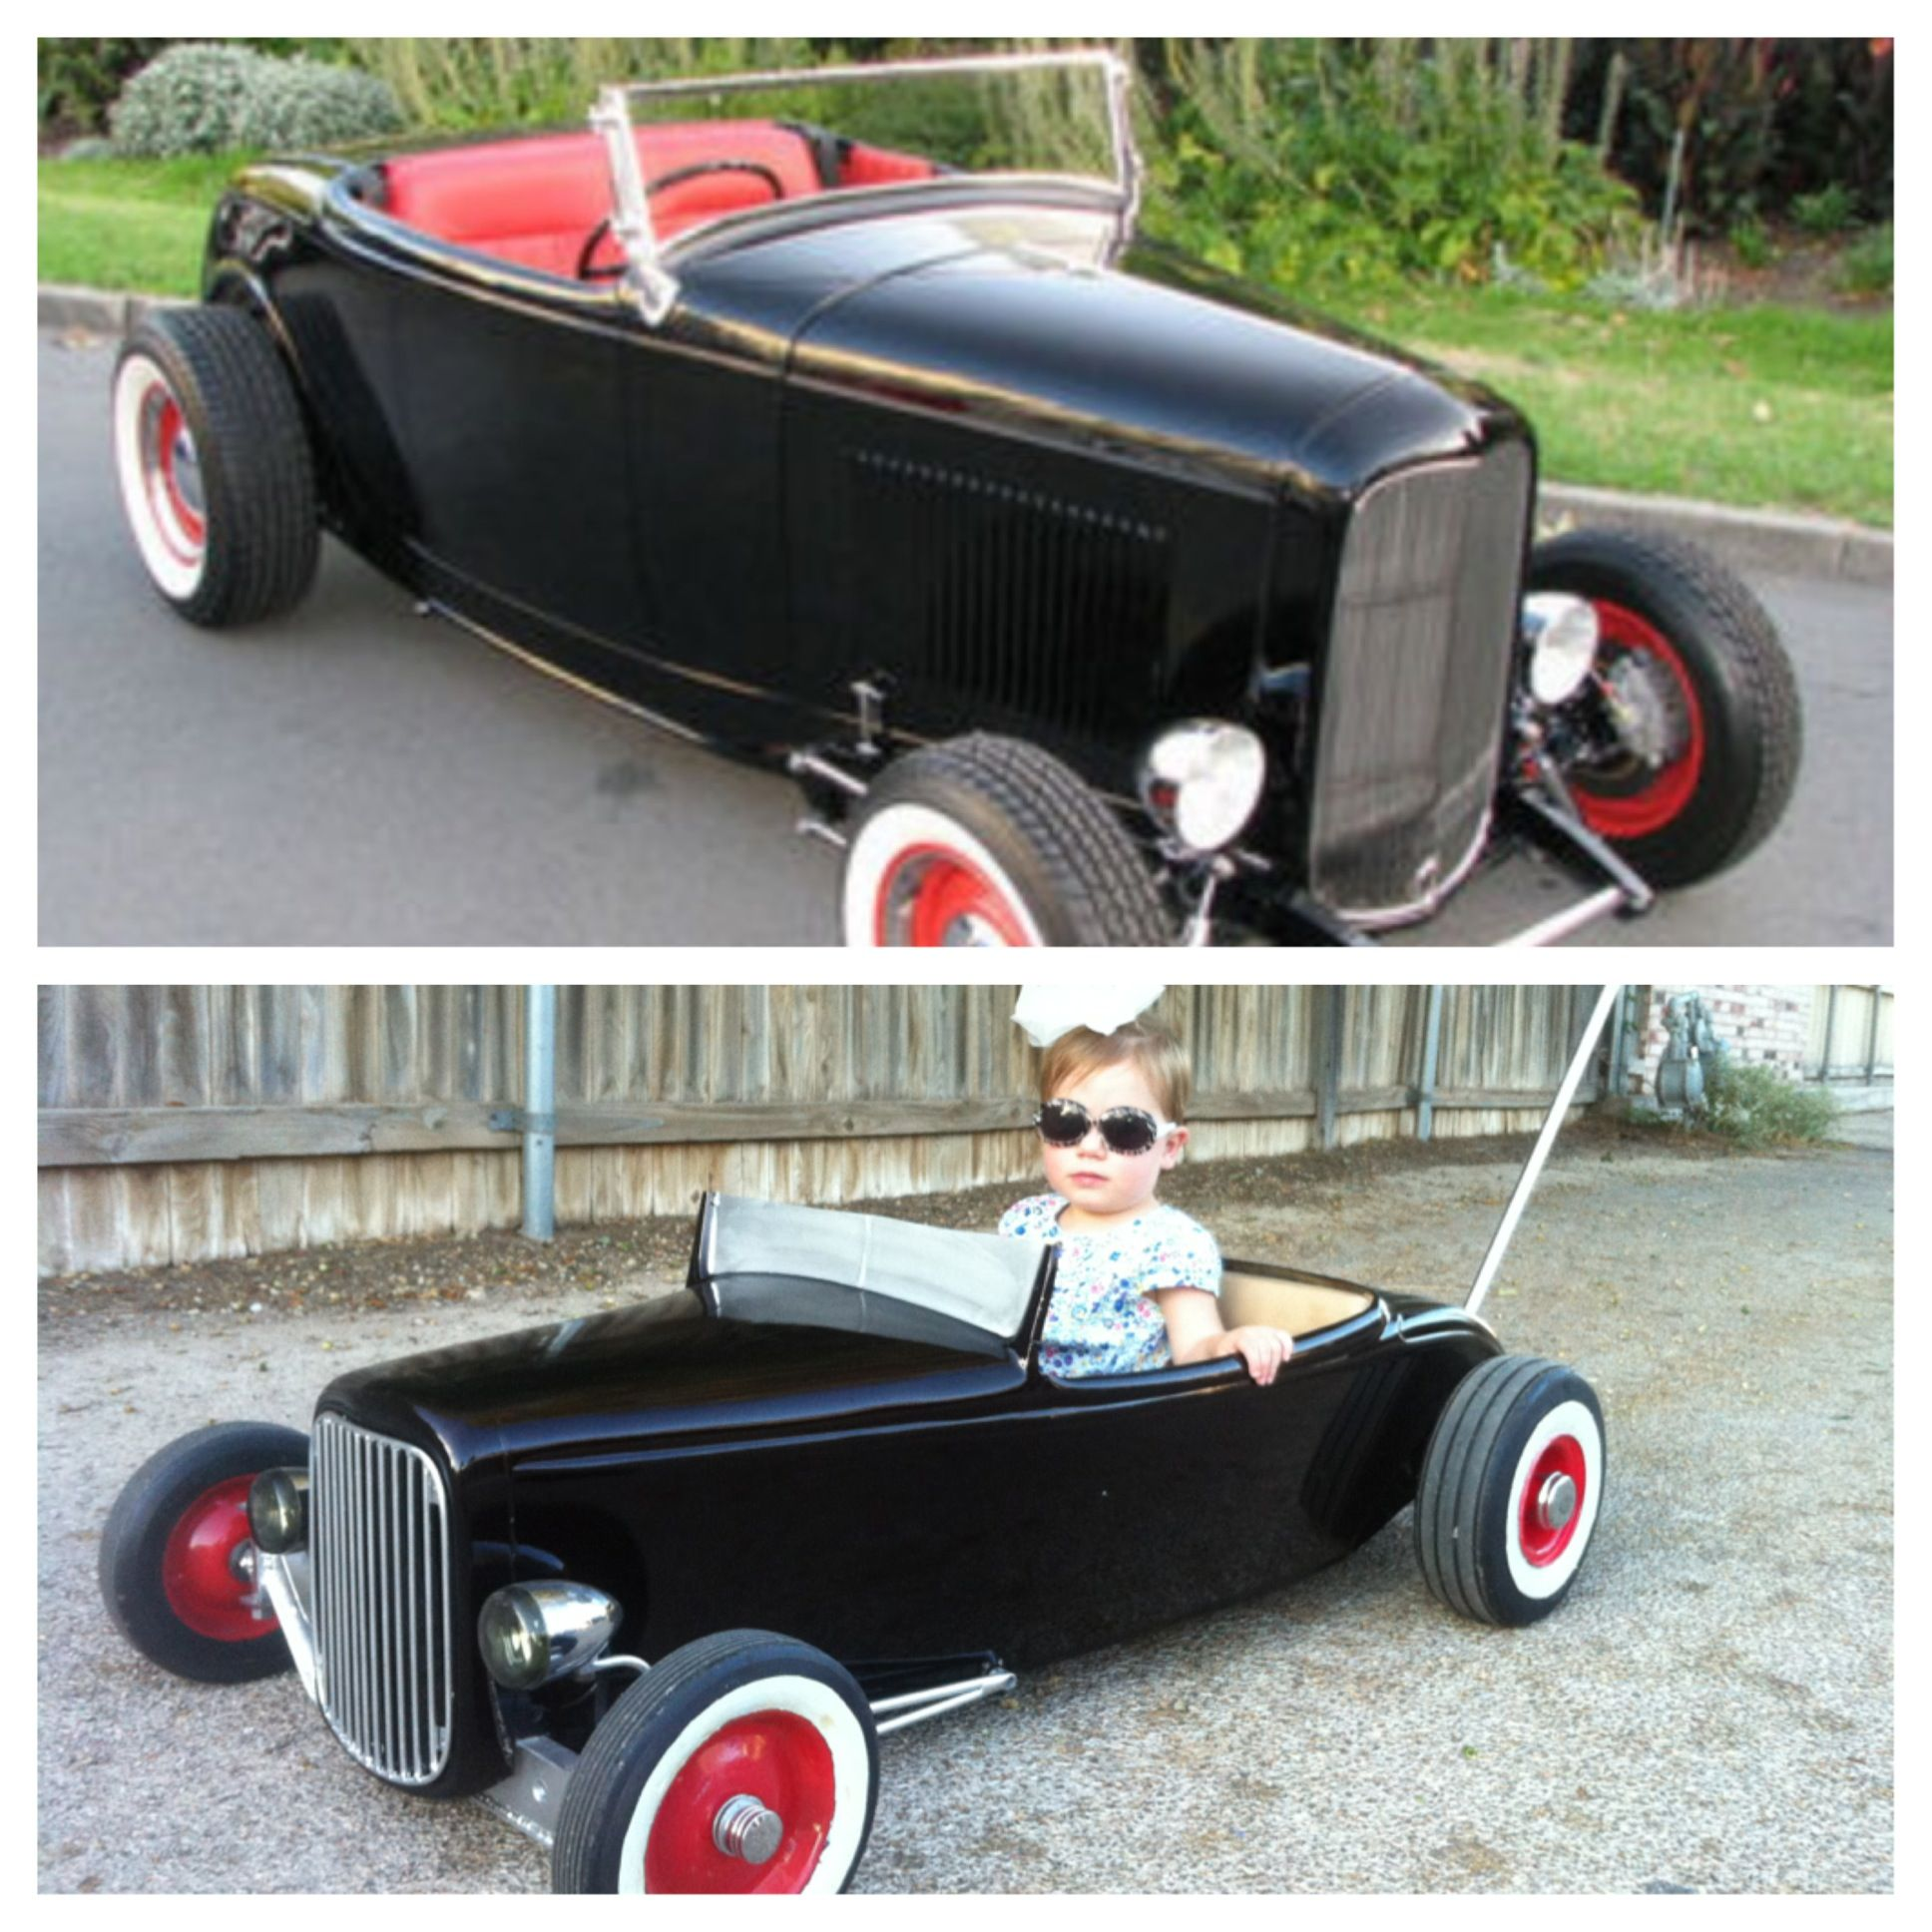 Big vs Small. The top pic was my inspiration for the Hot Rod ...